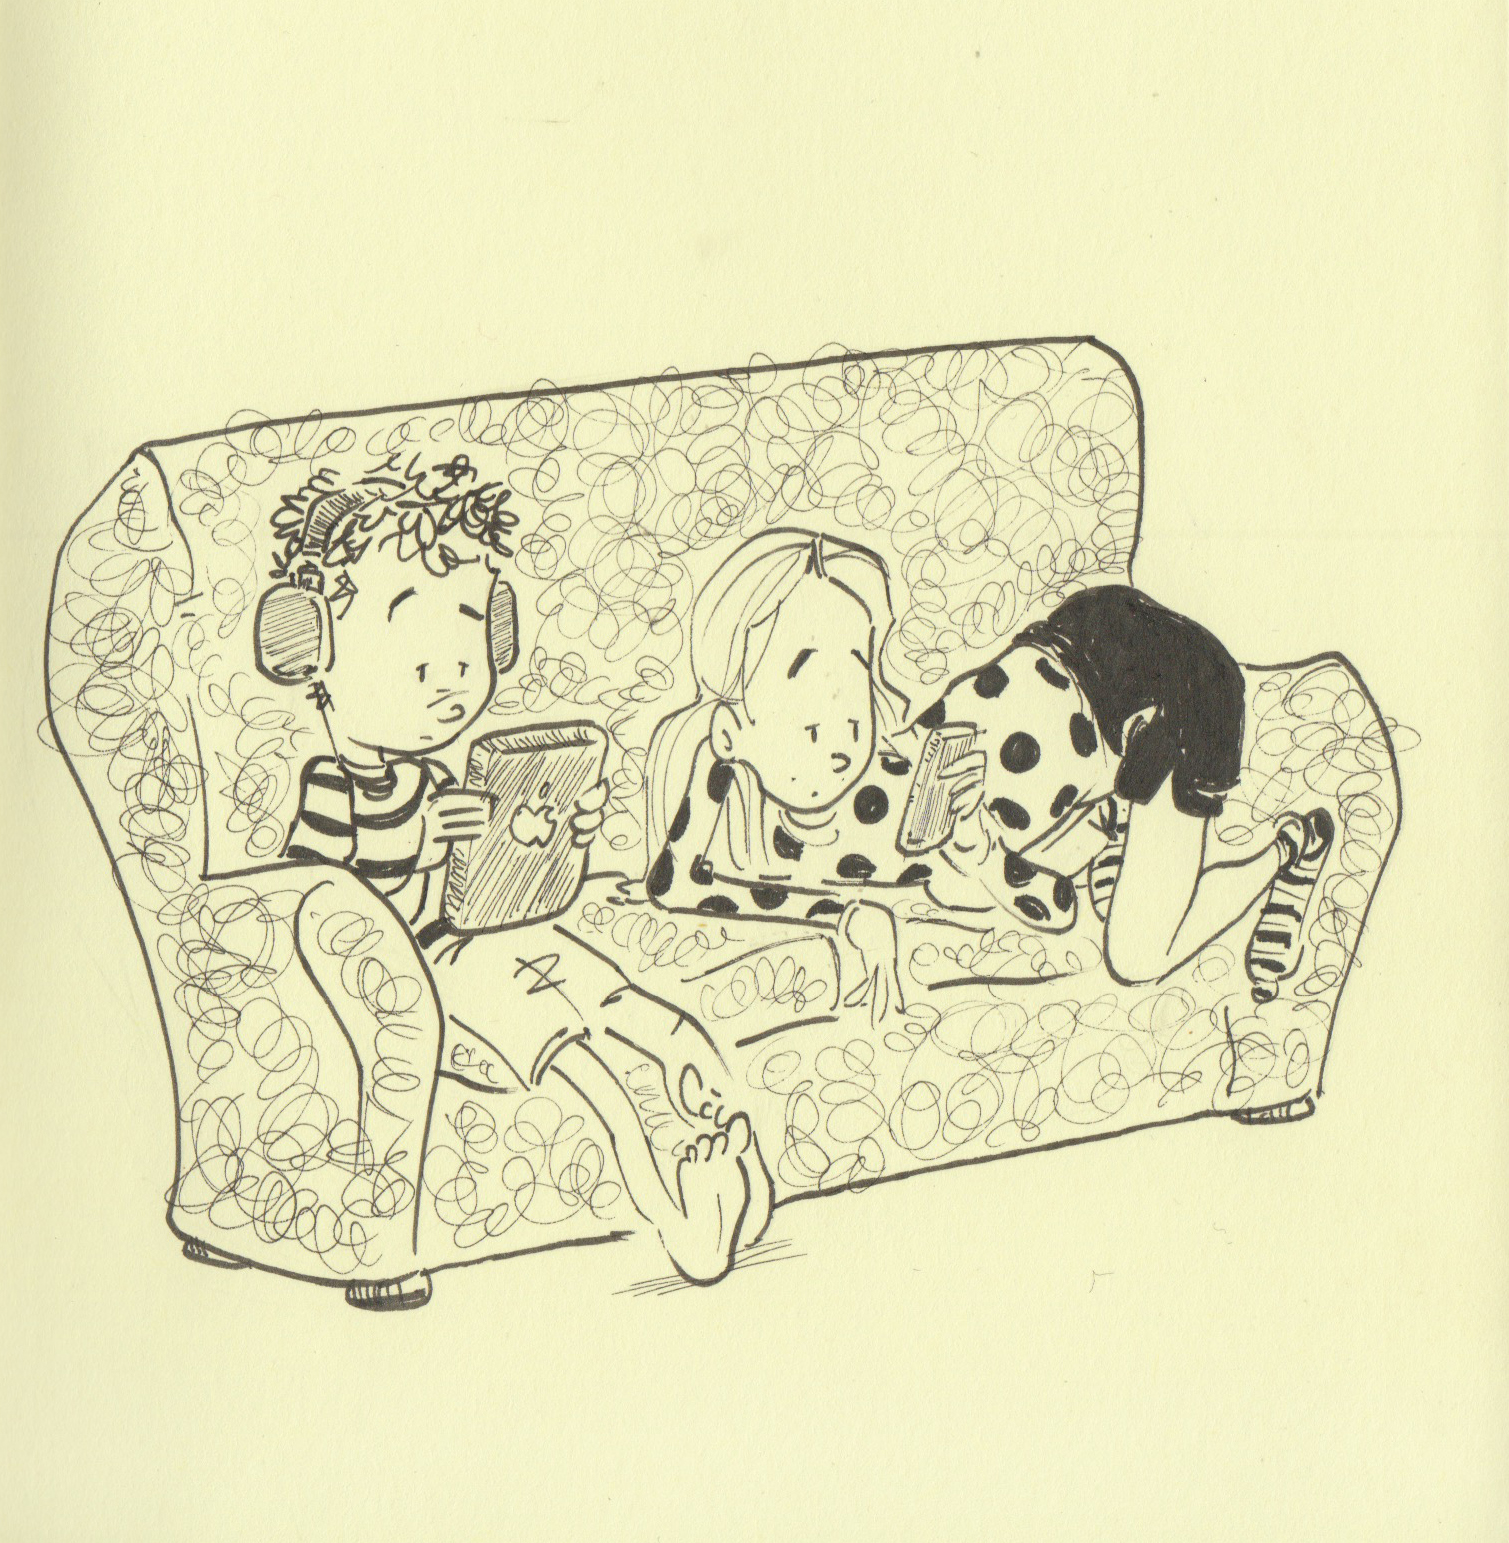 couchhang